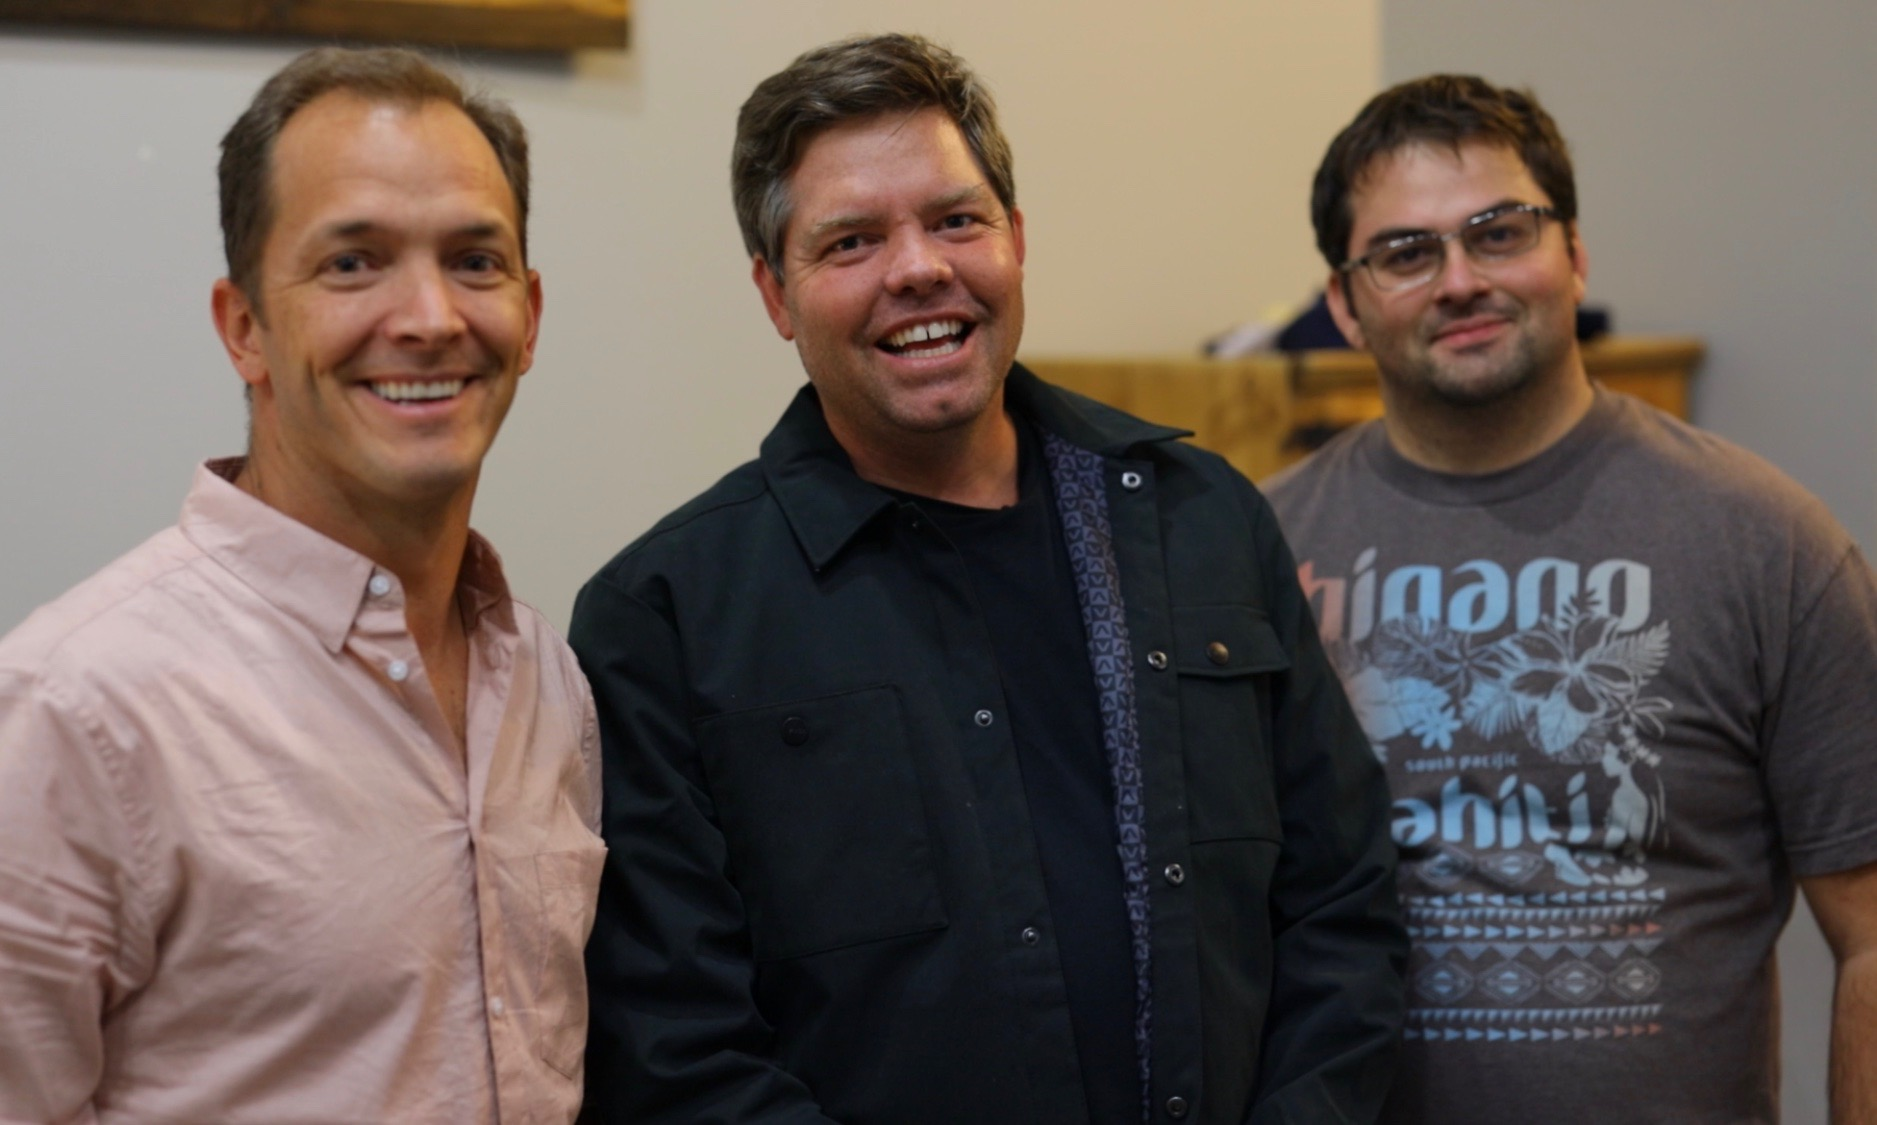 Jase Bennett , Serial Entrepreneur and YouTuber with Millions of Subs   Richie Norton , Serial Entrepreneur and Bestselling Author (Translated in Over 10 Languages)   Thiefaine Magre , Serial Entrepreneur, Chinese Language Speaker, Supply Chain Expert   —Co-Founders of Prouduct   We aren't in business for business. We have families that we love and support. We are in business to create a good life.   Our business is to help you create your best life possible through the joy you'll feel contributing world-class products to the world.   Lifestyle entrepreneurship is just a matter of choice…and it's scalable.    What's your next big idea?    We can help you create something that will stop taking up your time and  start creating more freedom of time for you to do the things that matter most.